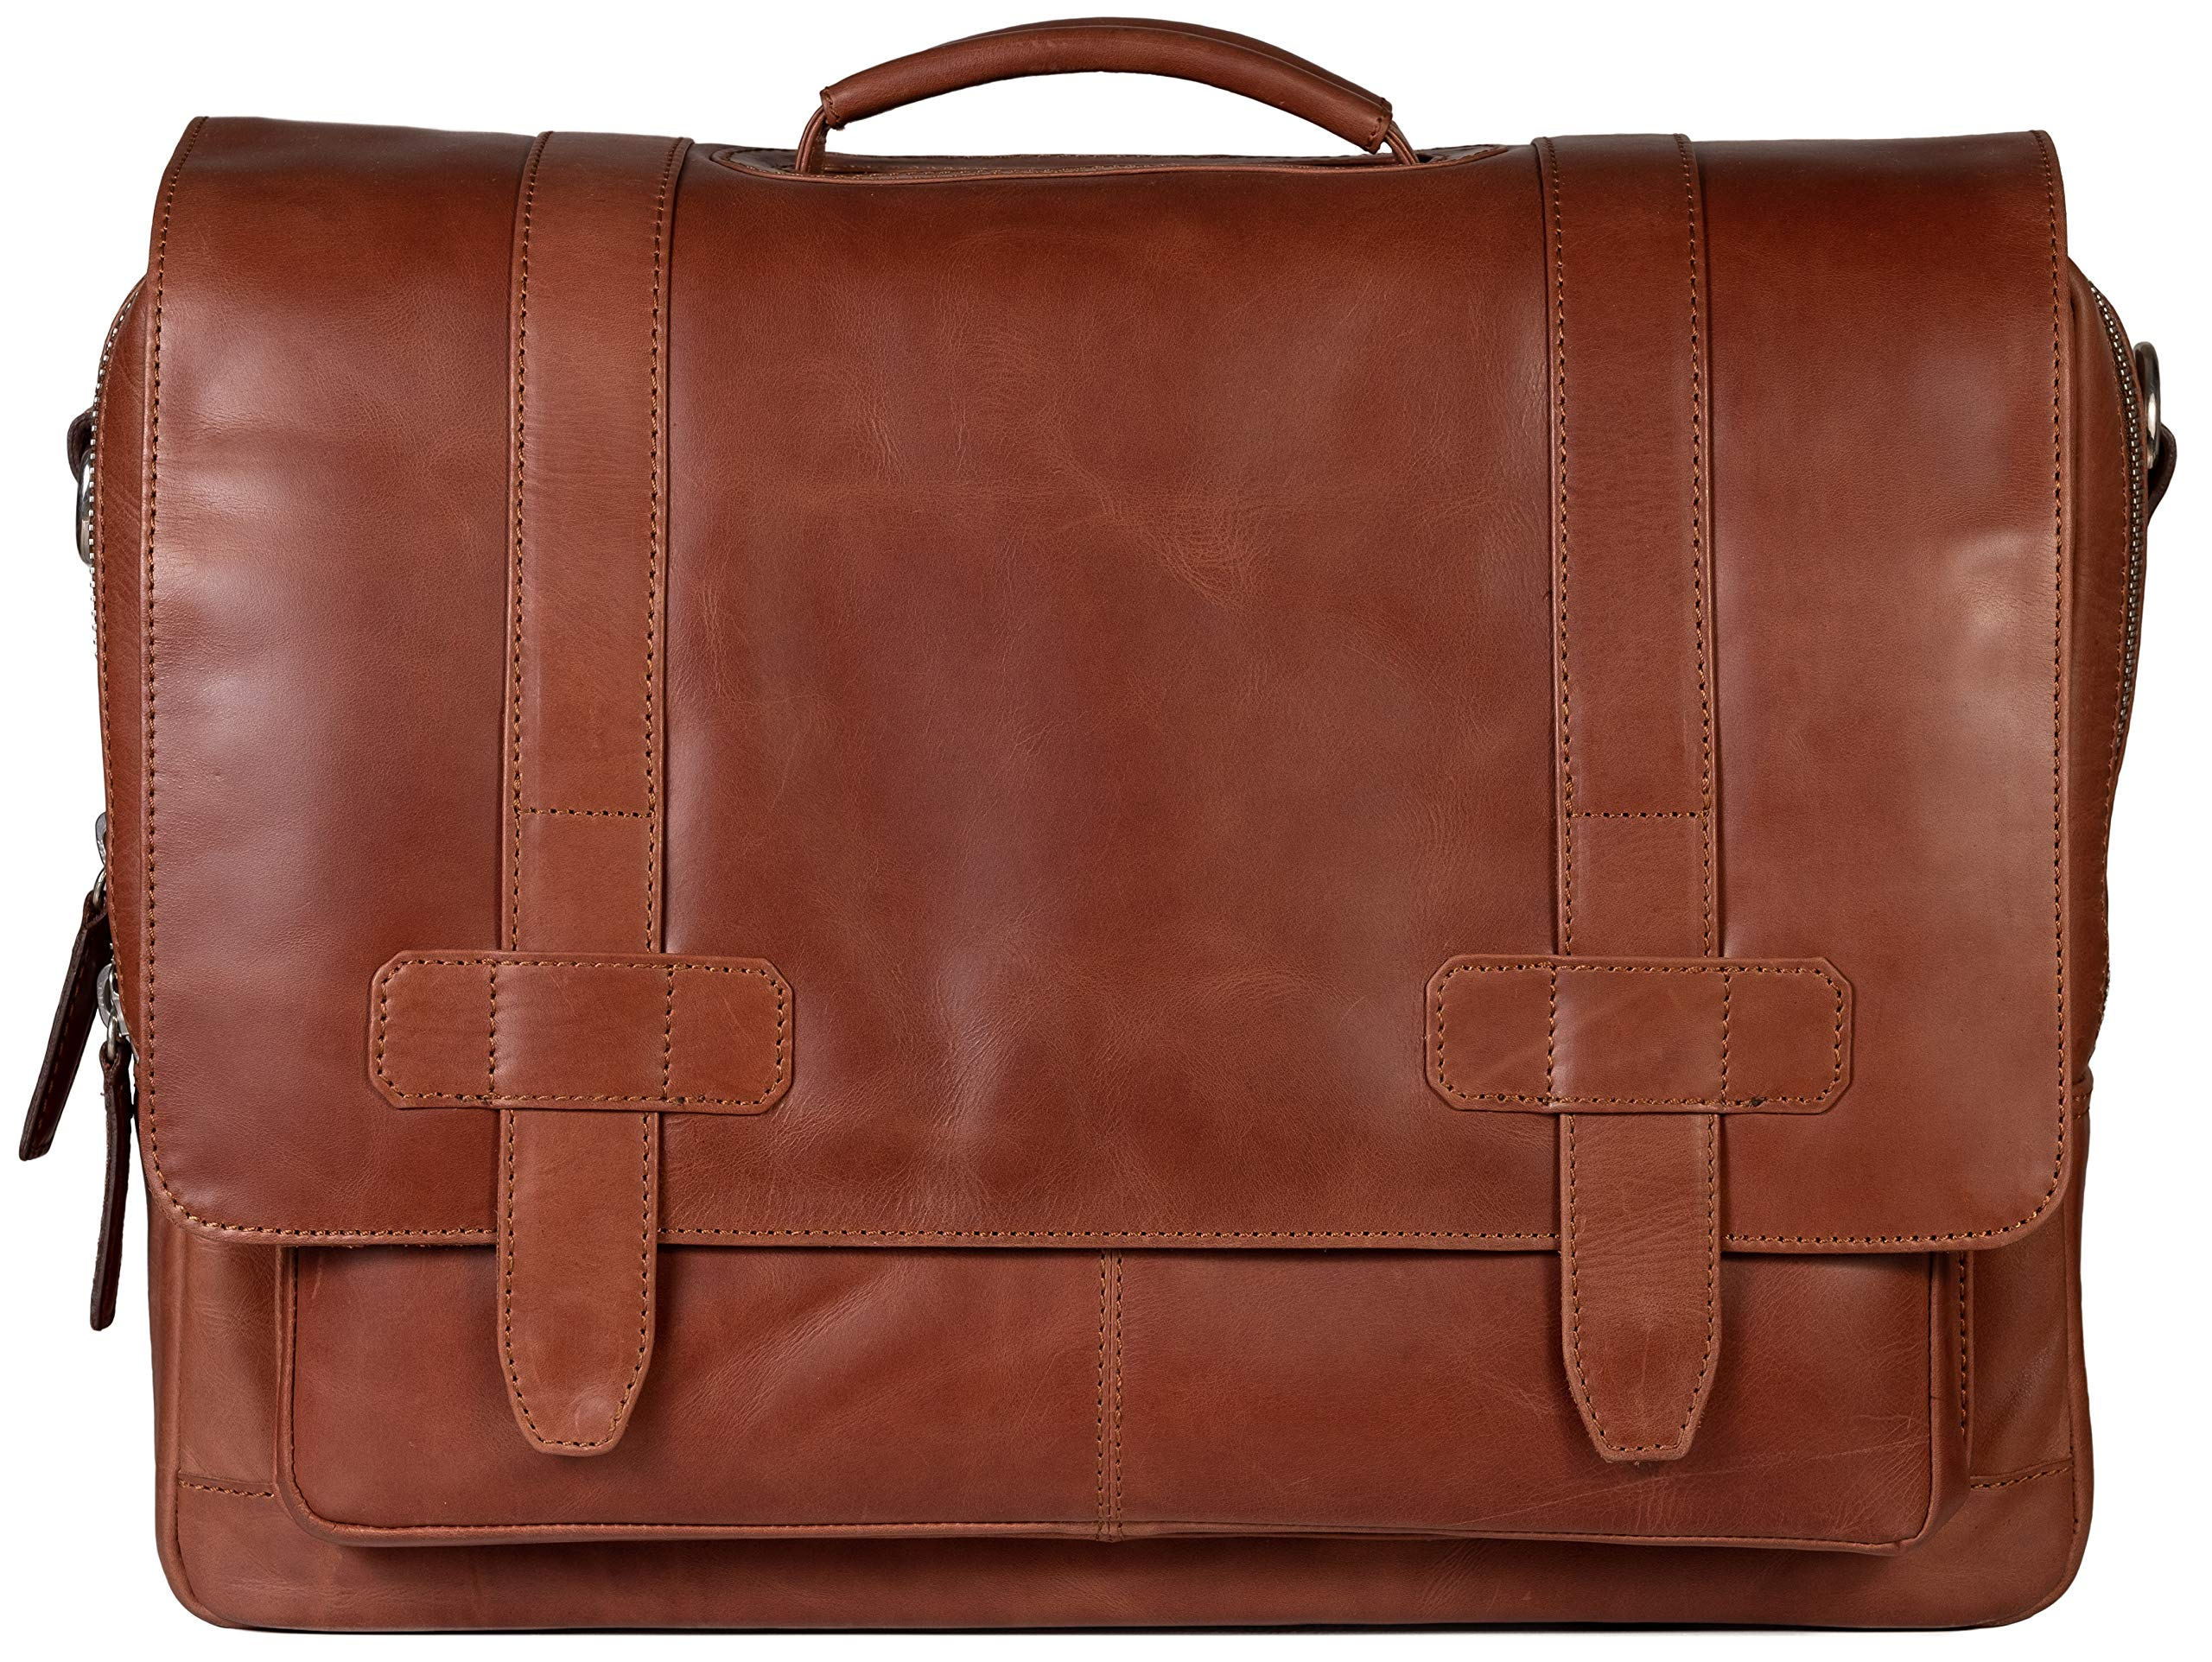 Full-Grain Leather Messenger Laptop Bag/Briefcase for Men, Logan, fits 15.4 inch Laptop, Adjustable Strap, 16 inch by 12 inch by 4 inch (Tan) by Ladderback